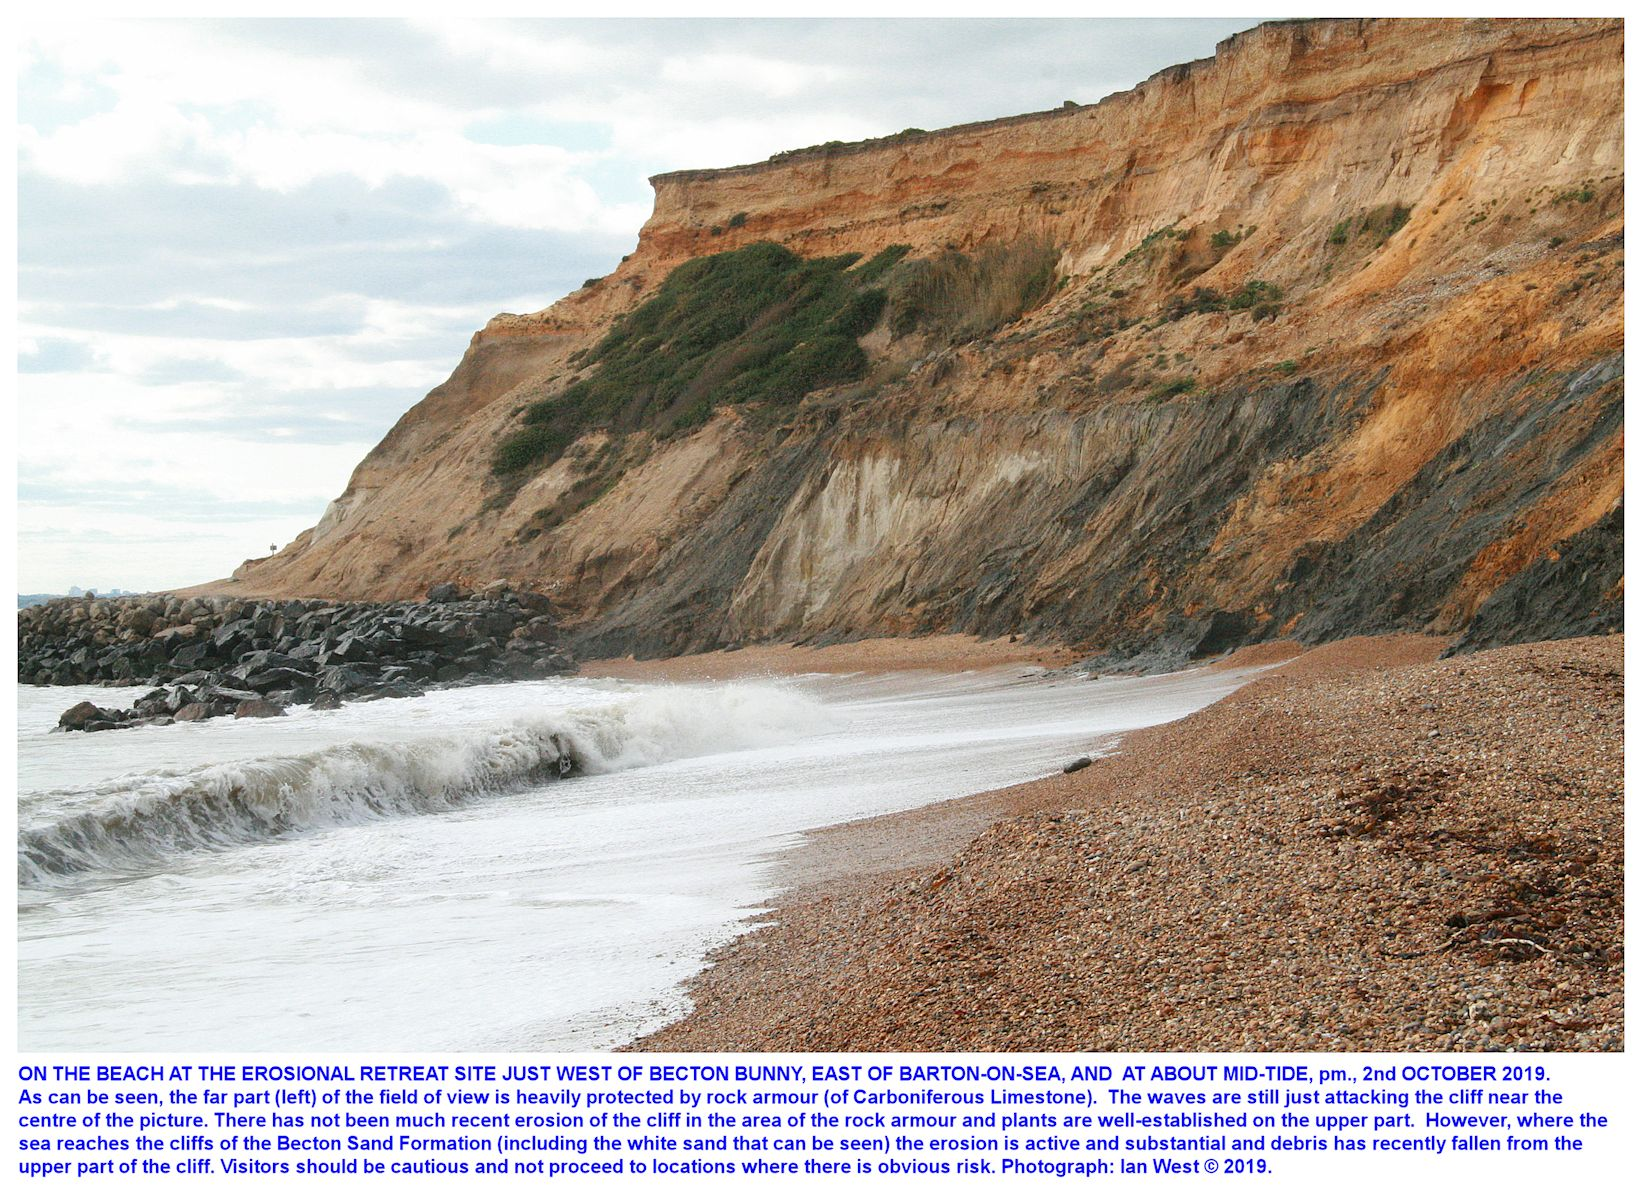 The erosional reentrant of cliffs  that cut into the Becton Sand, part of the Barton Group,  near Becton Bunny, east of the Barton-on-Sea, sea defences seen from the beach, 2nd September, 2019, Ian West